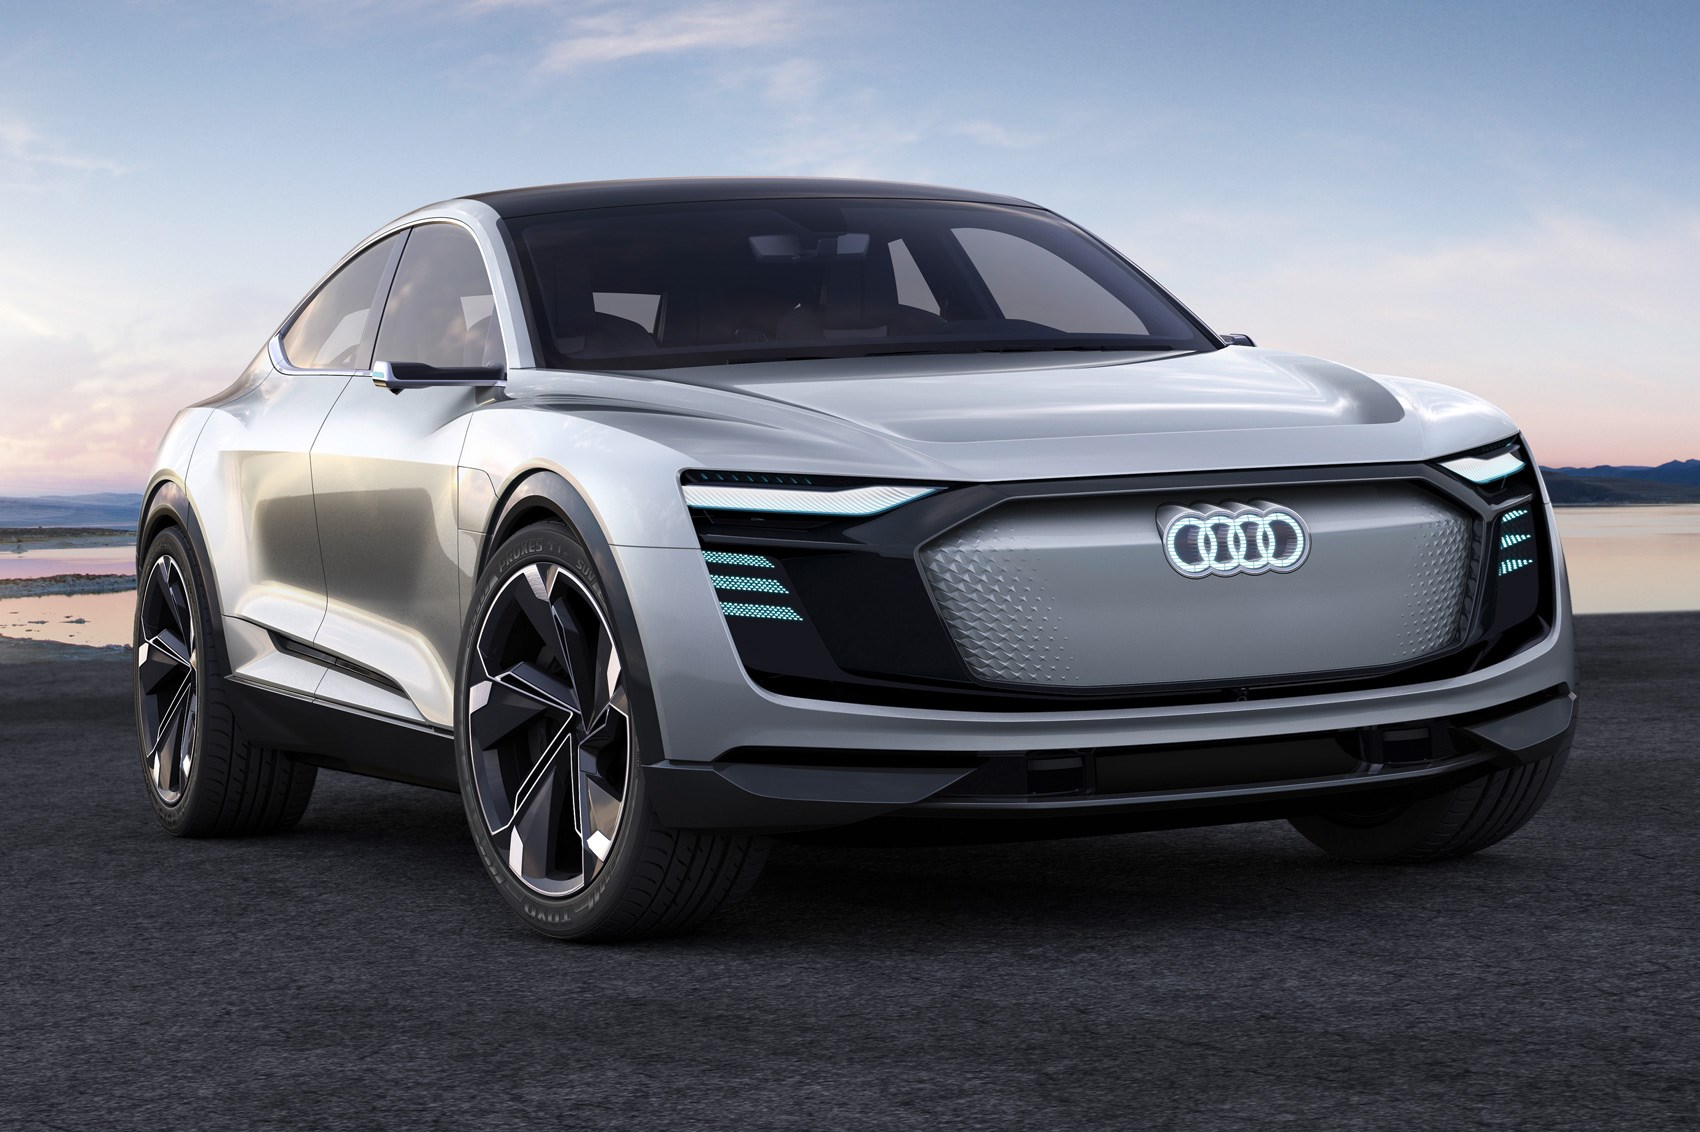 age of e tron audi e tron sportback concept surges ev plans forward by car magazine. Black Bedroom Furniture Sets. Home Design Ideas